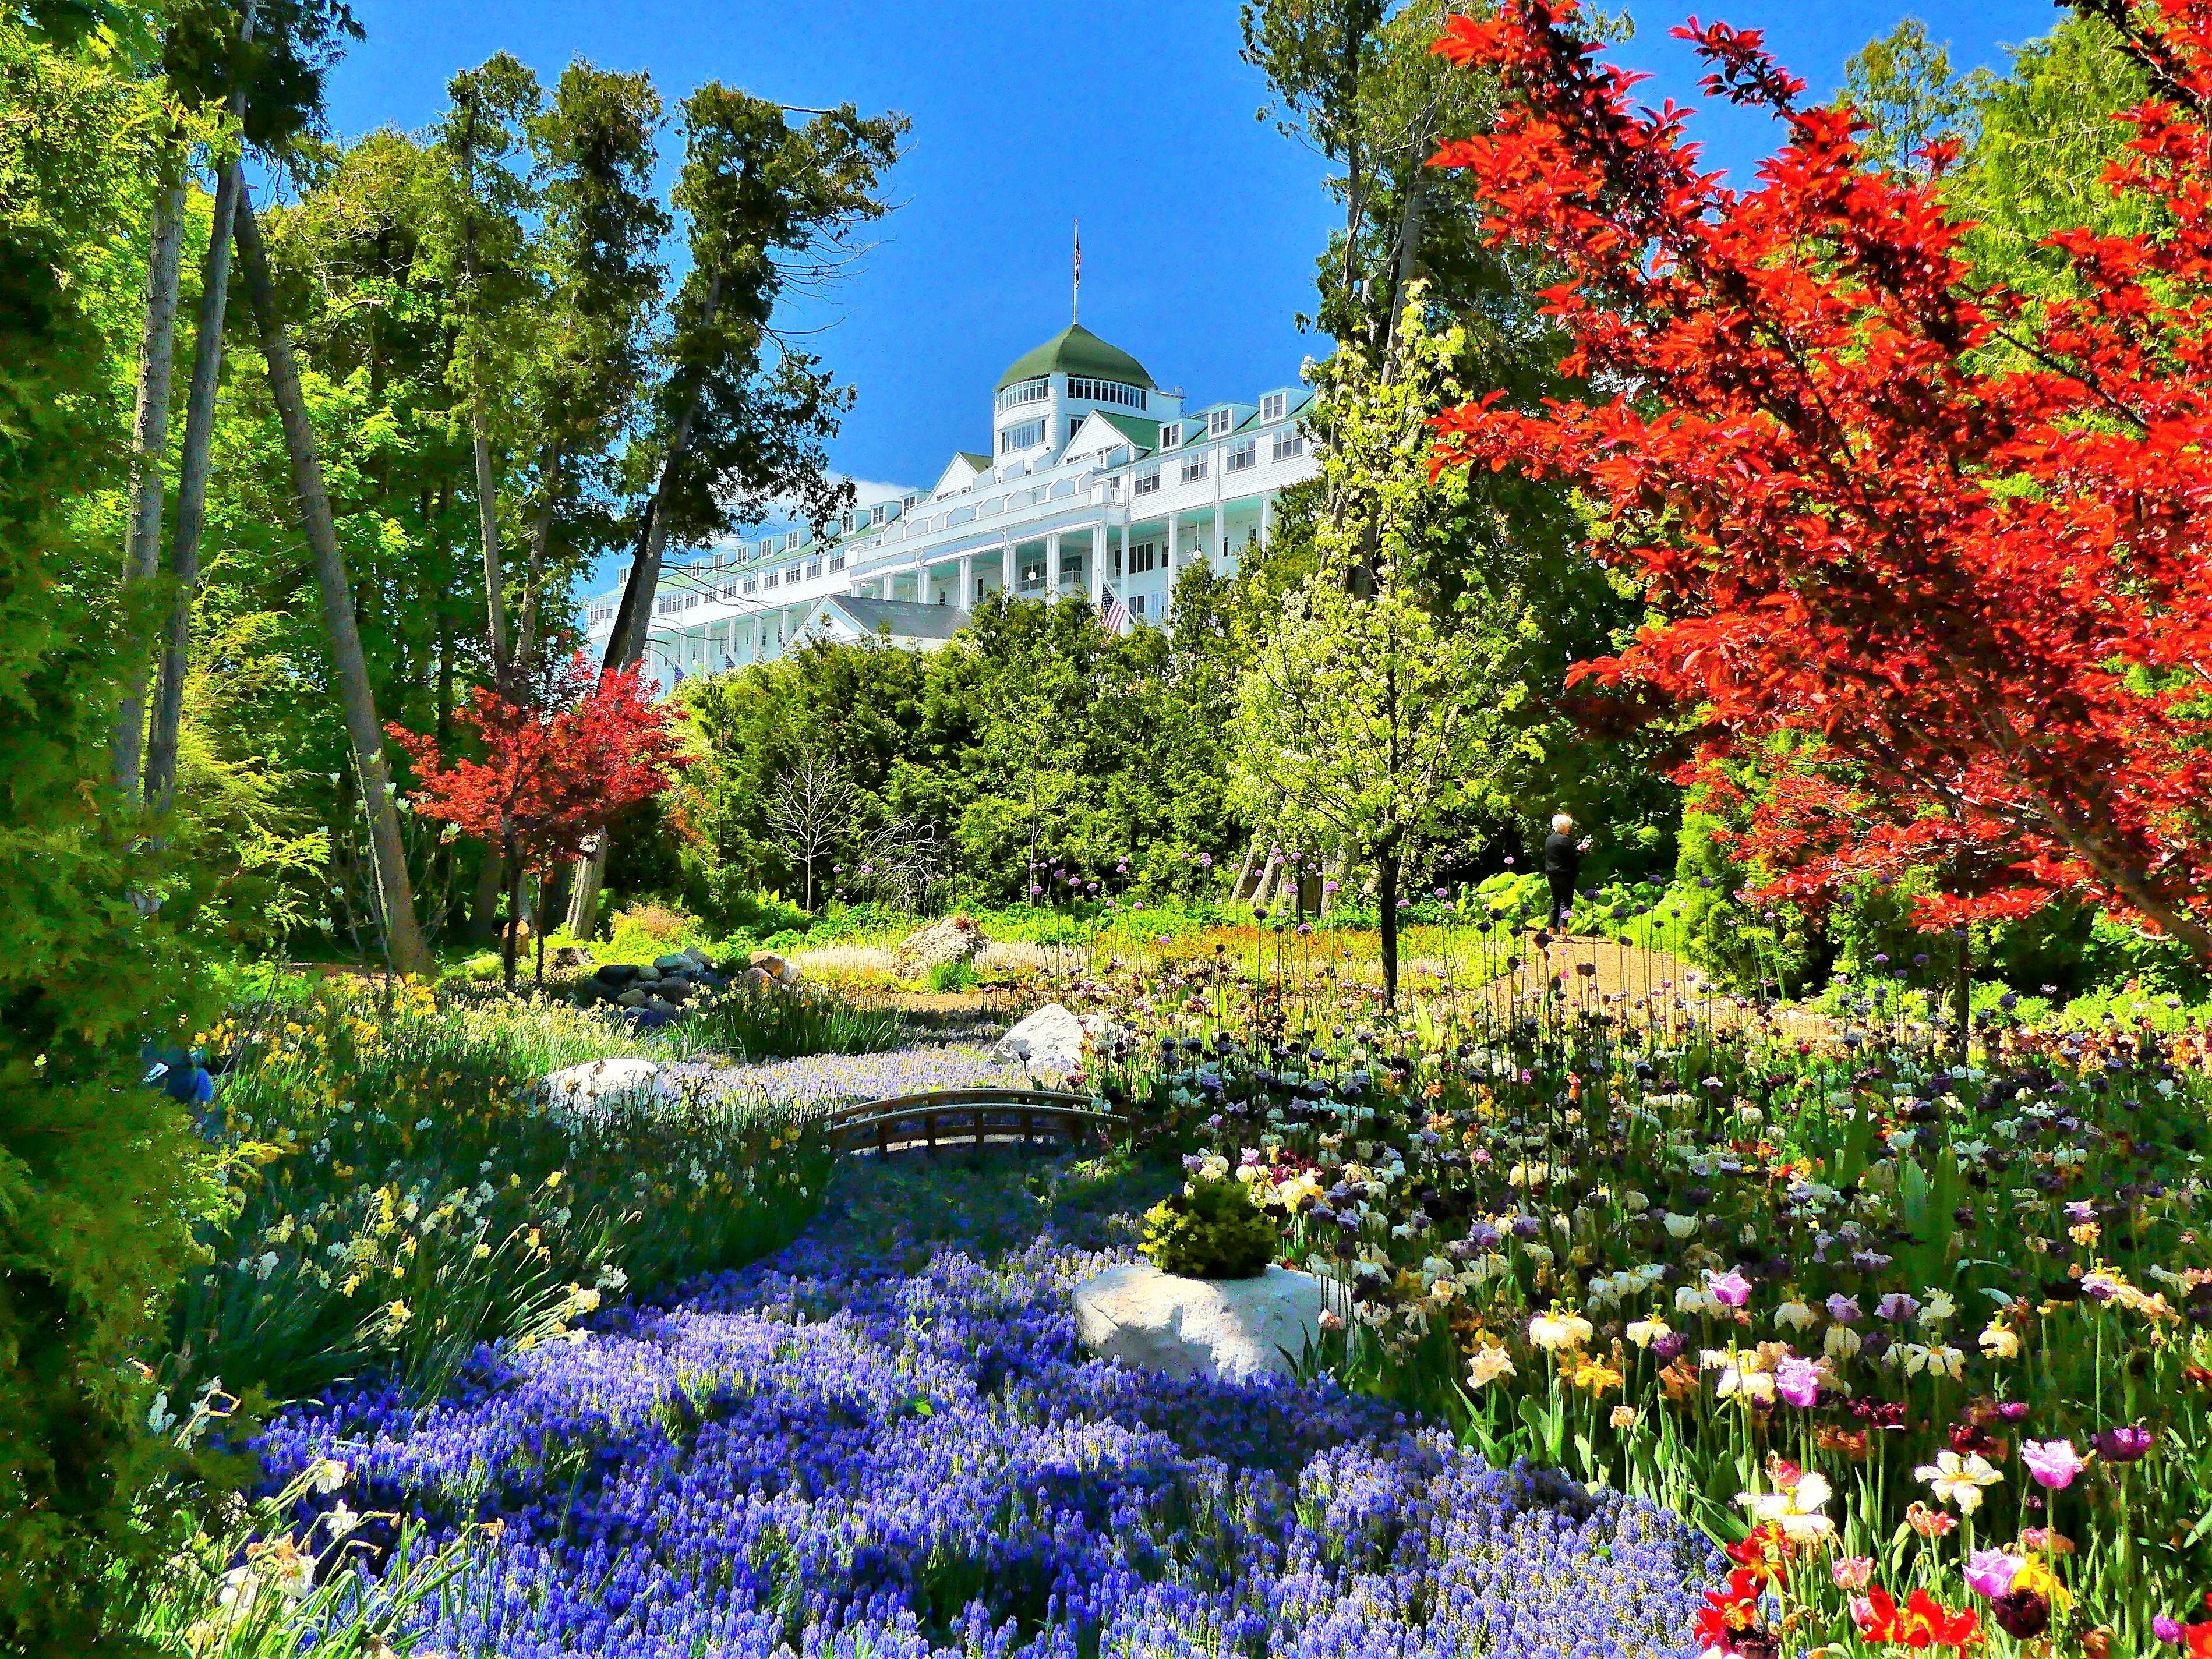 Grand Hotel with flowers